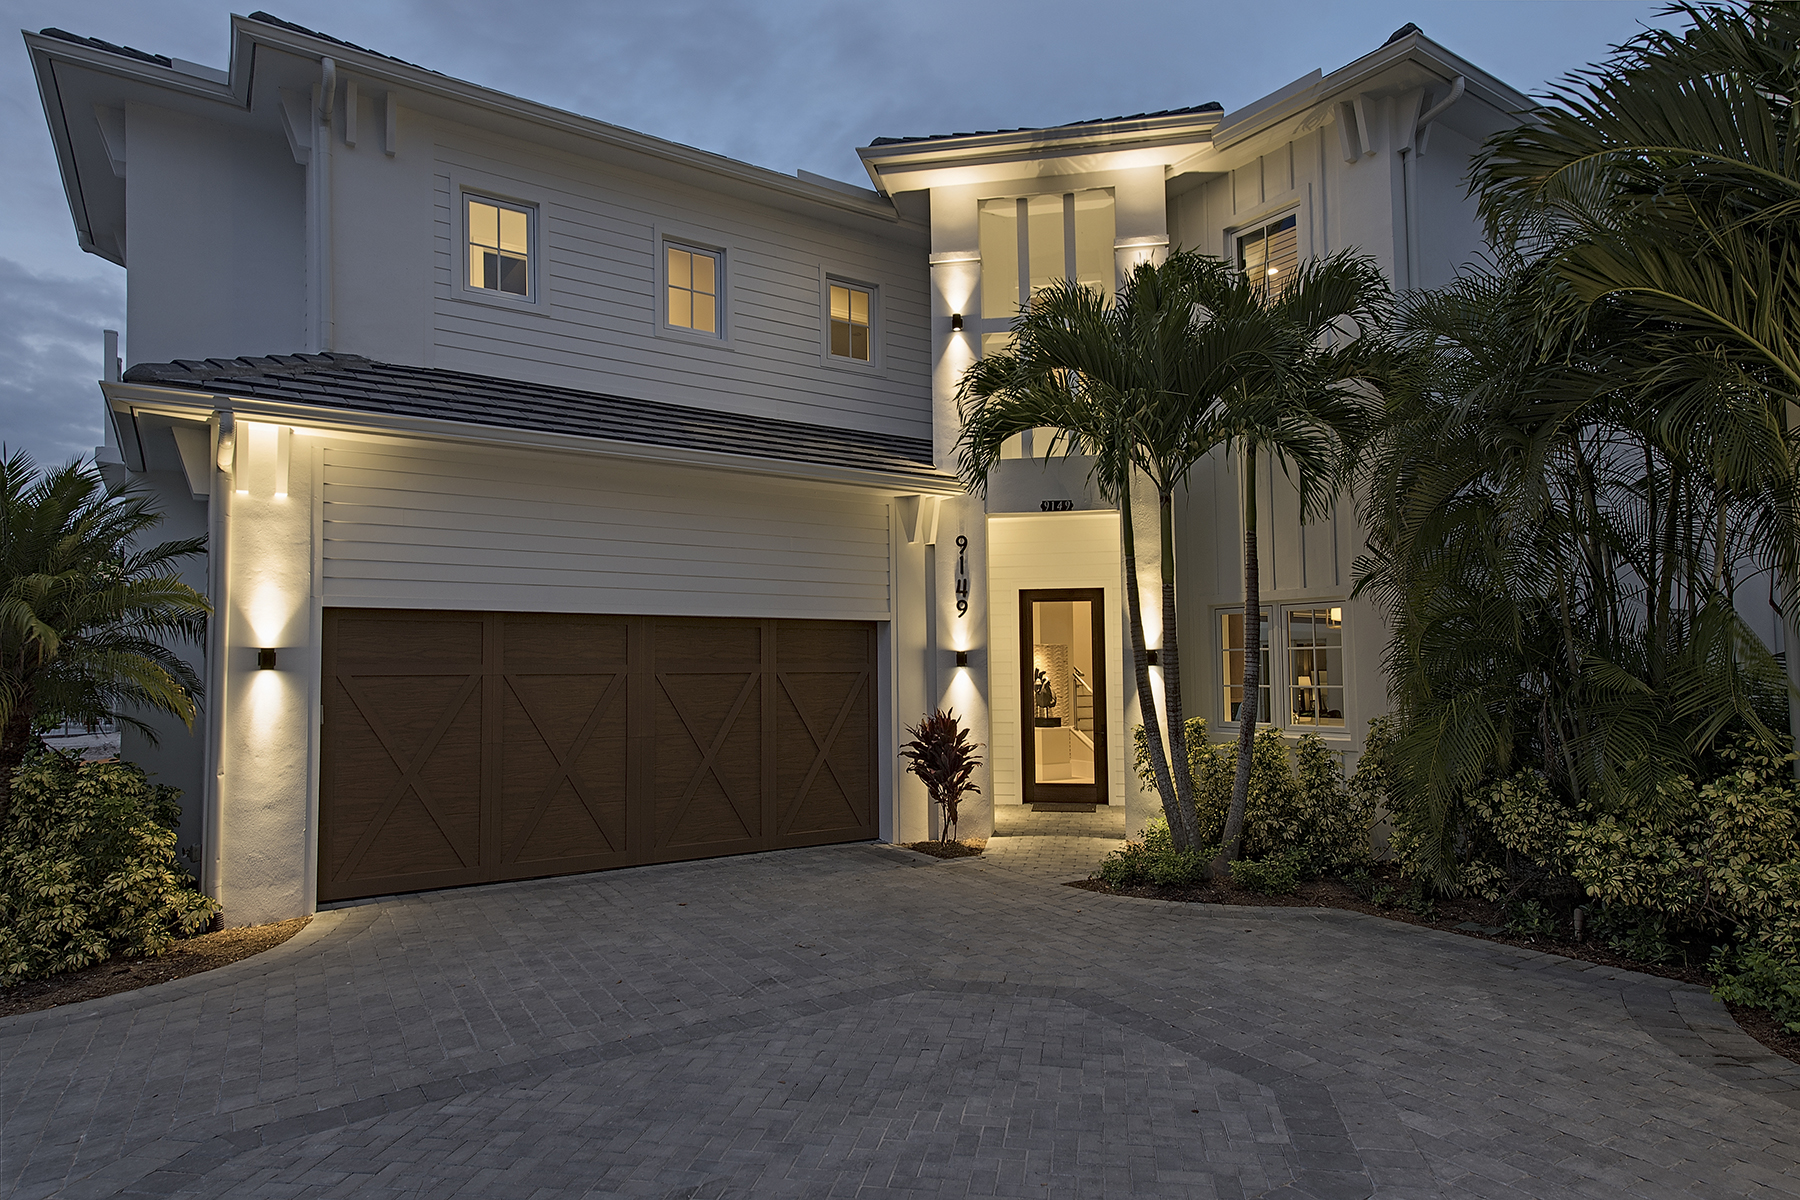 Single Family Home for Sale at 9149 Mercato Way , Naples, Fl 34108 9149 Mercato Way Naples, Florida, 34108 United States